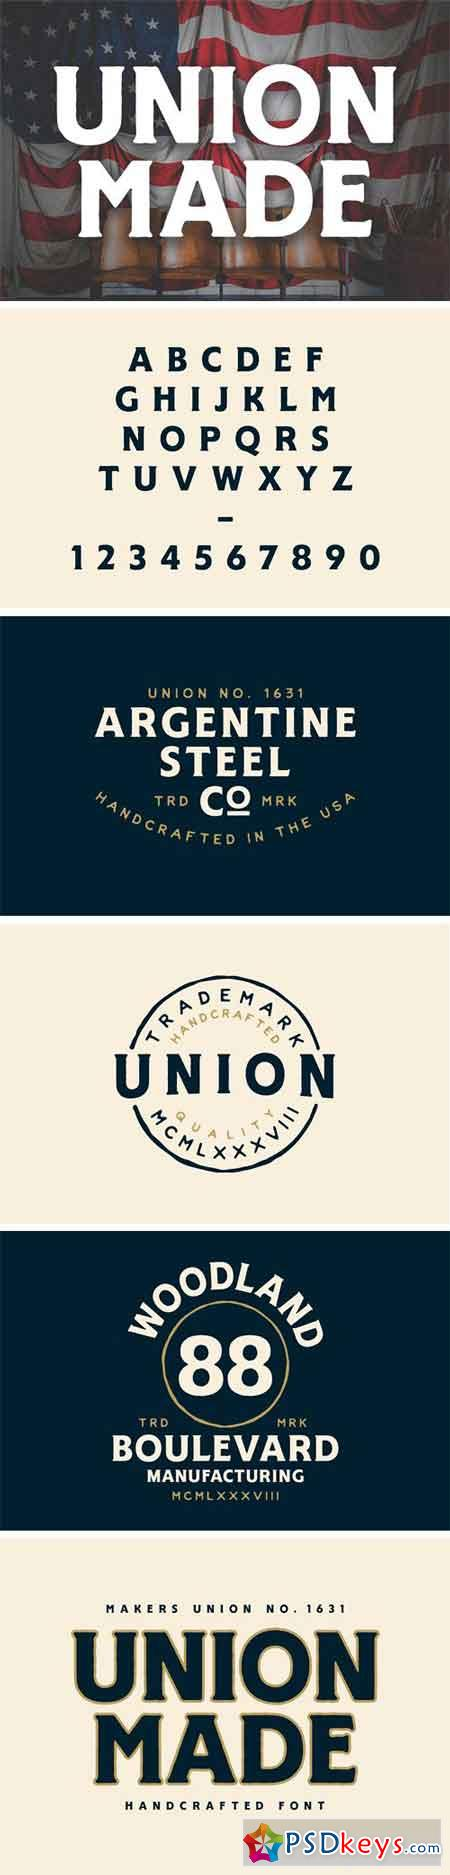 UNION MADE FONT 1867565